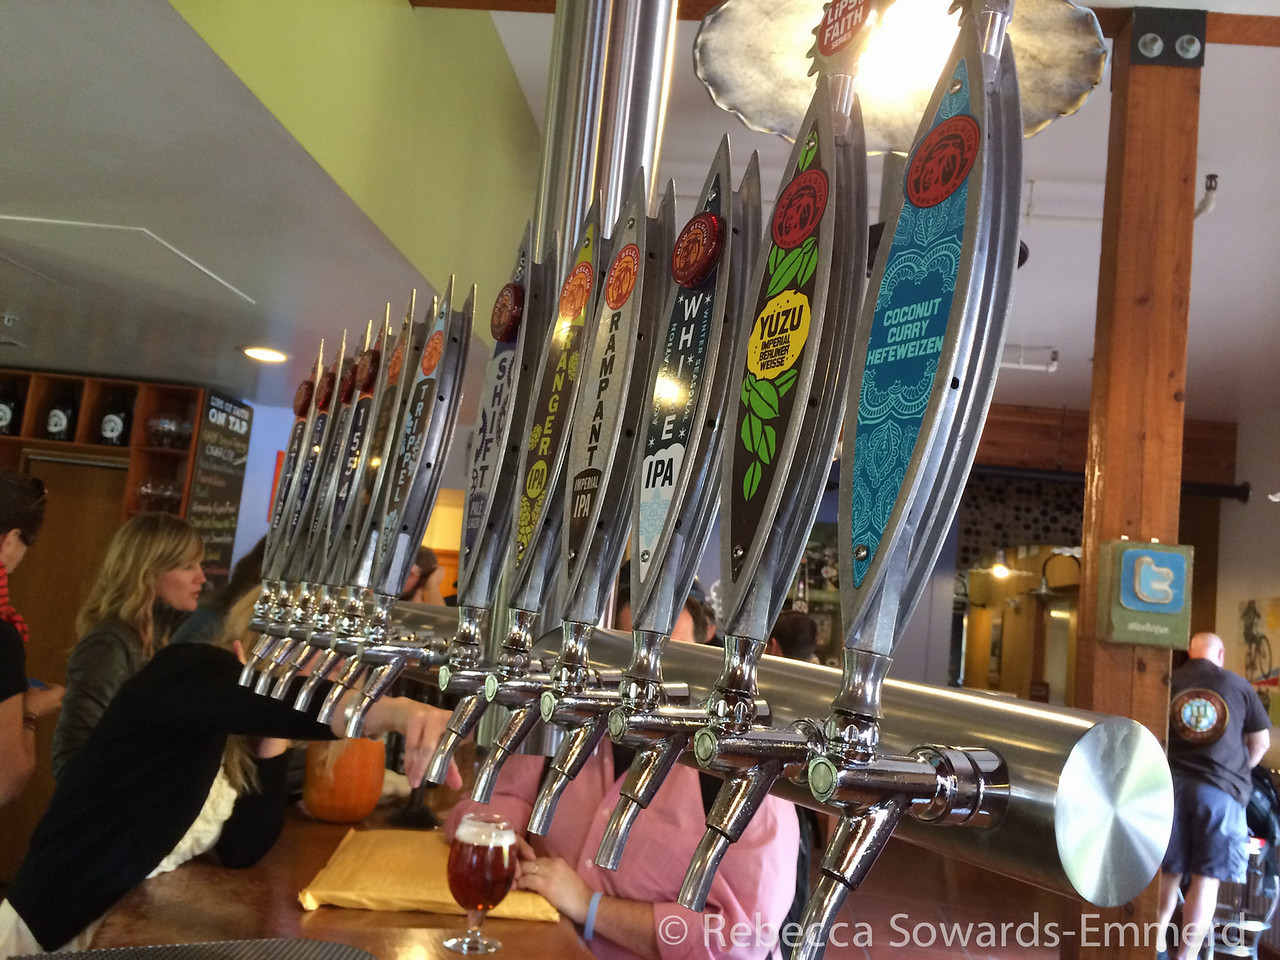 One of the sets of taps at the tasting room.